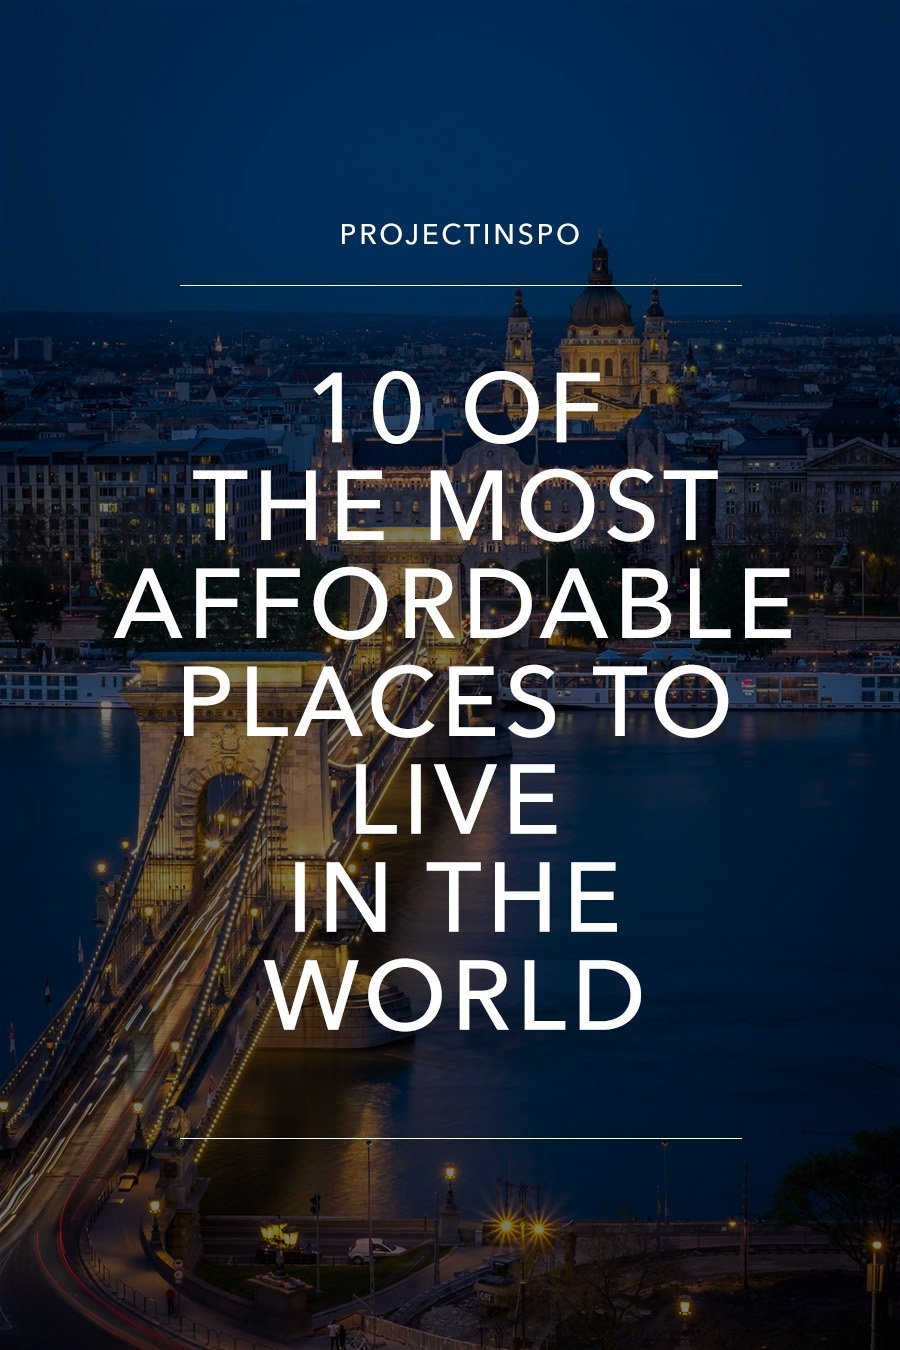 10 of the most affordable places to live in the world